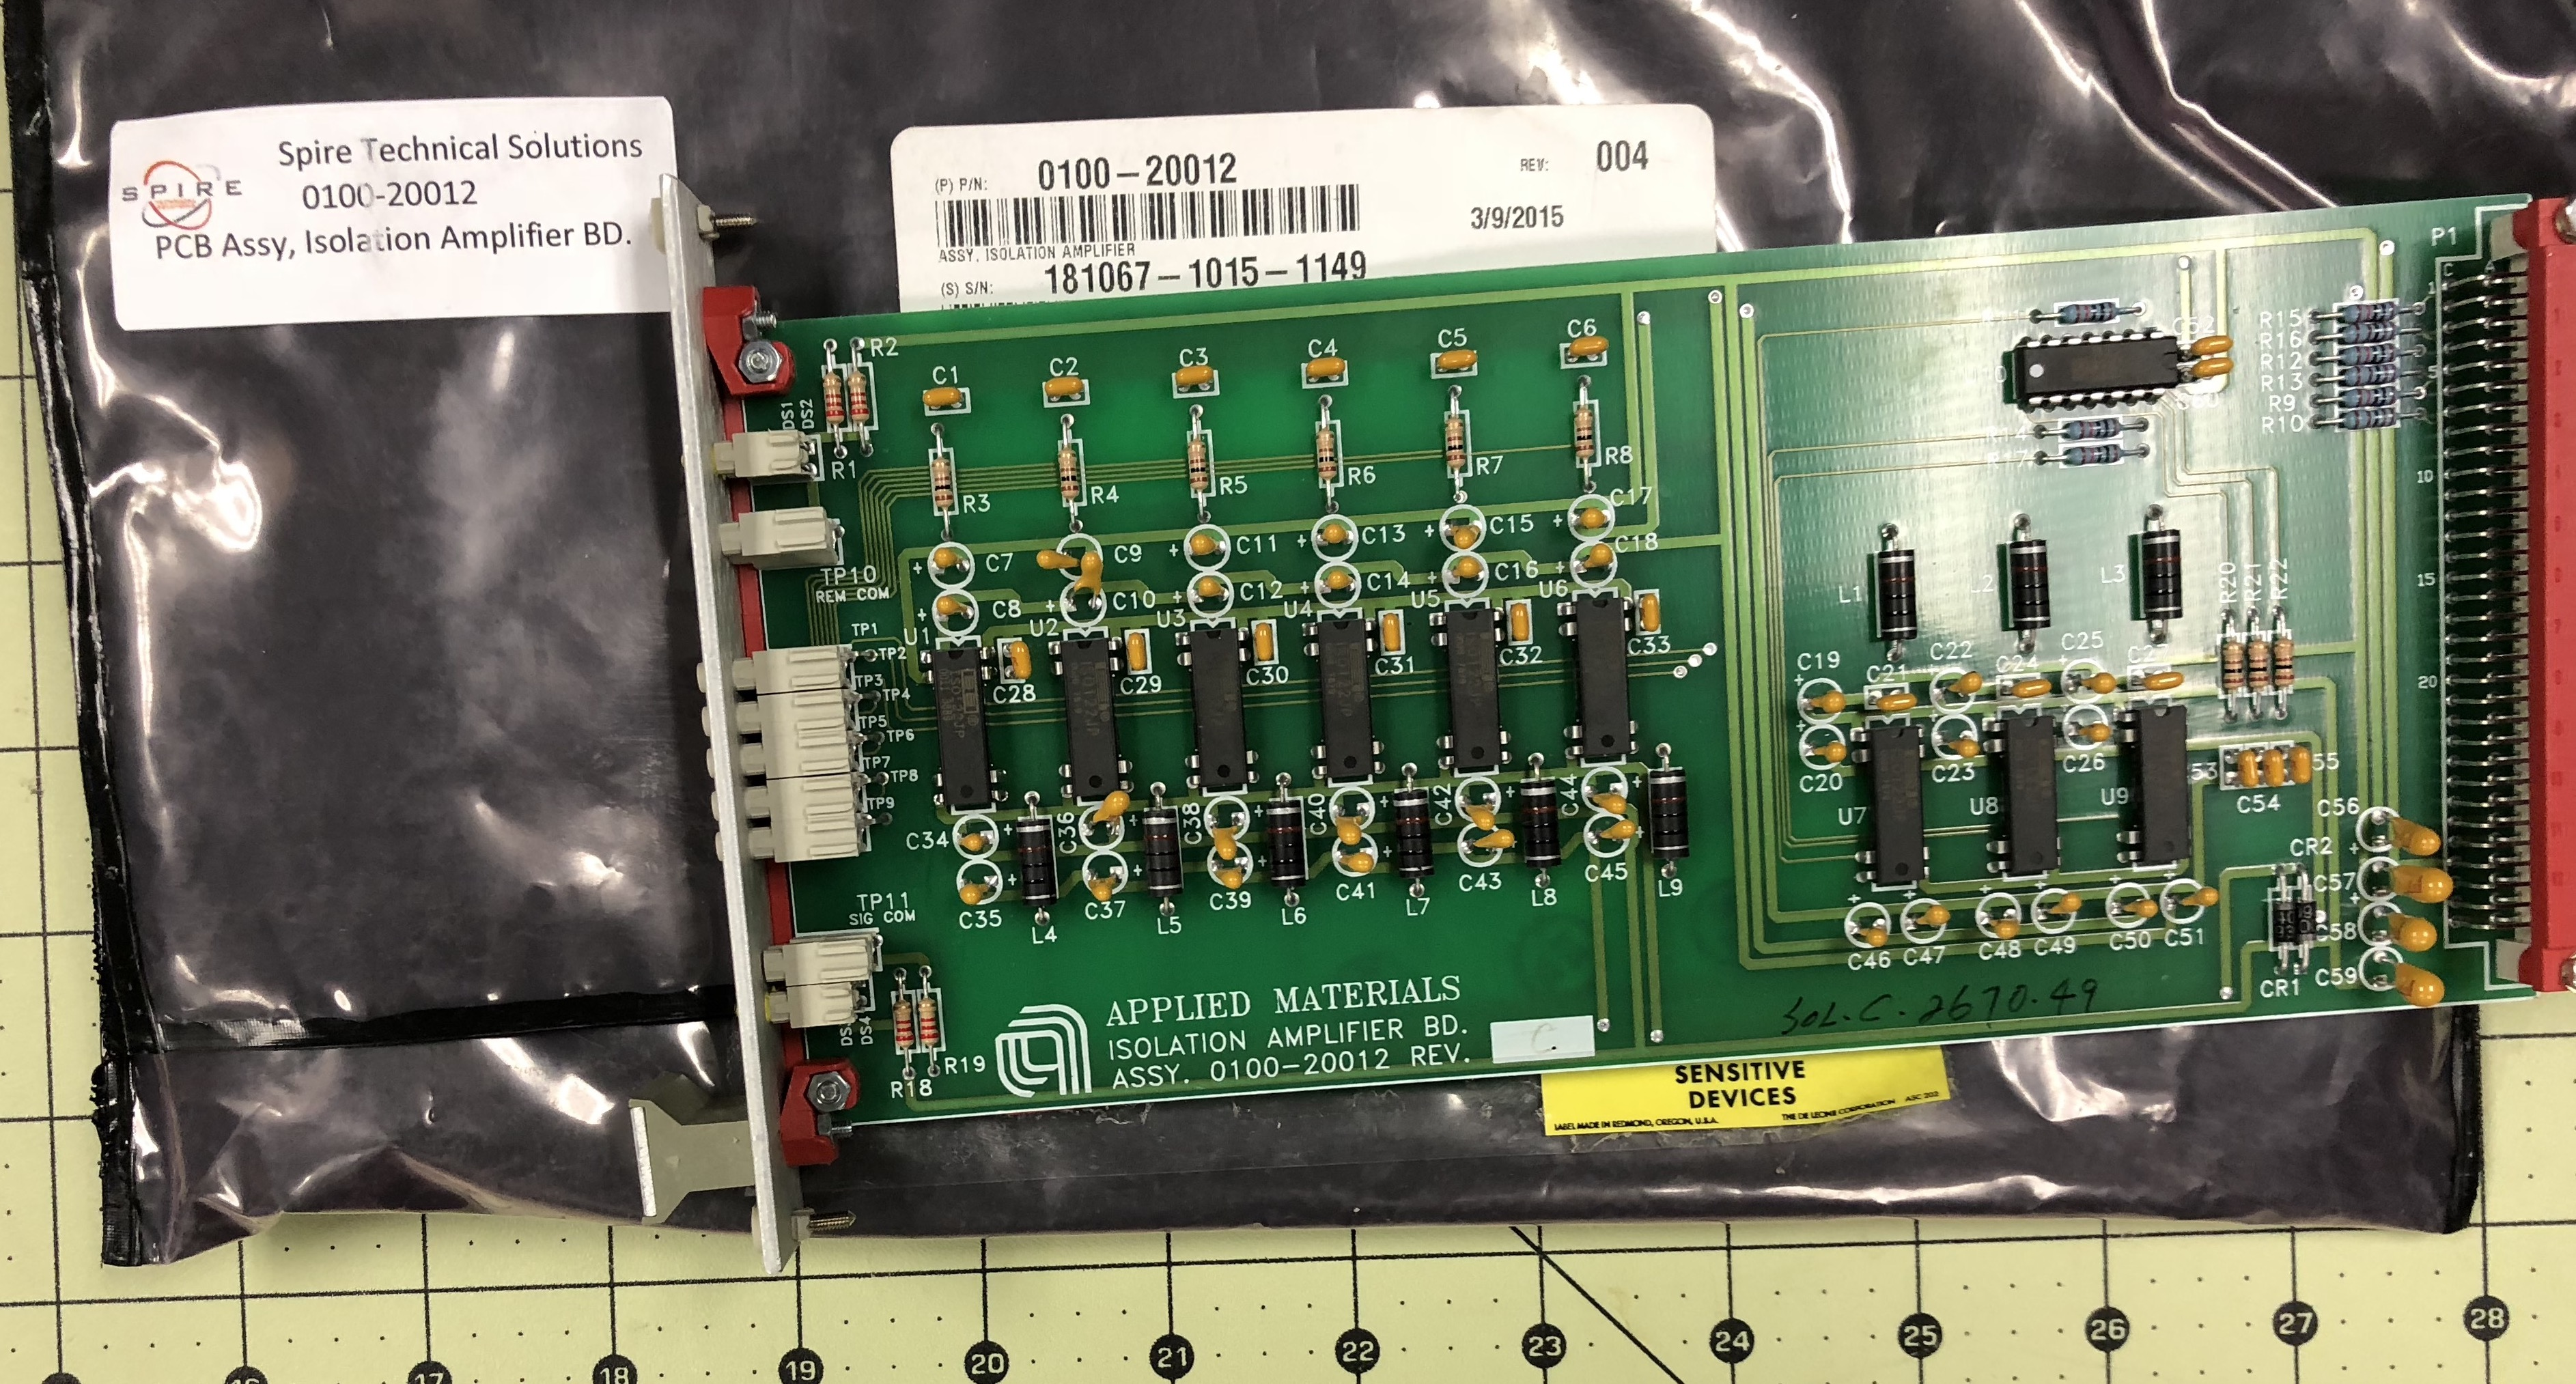 PCB Assy, Isolation Amplifier